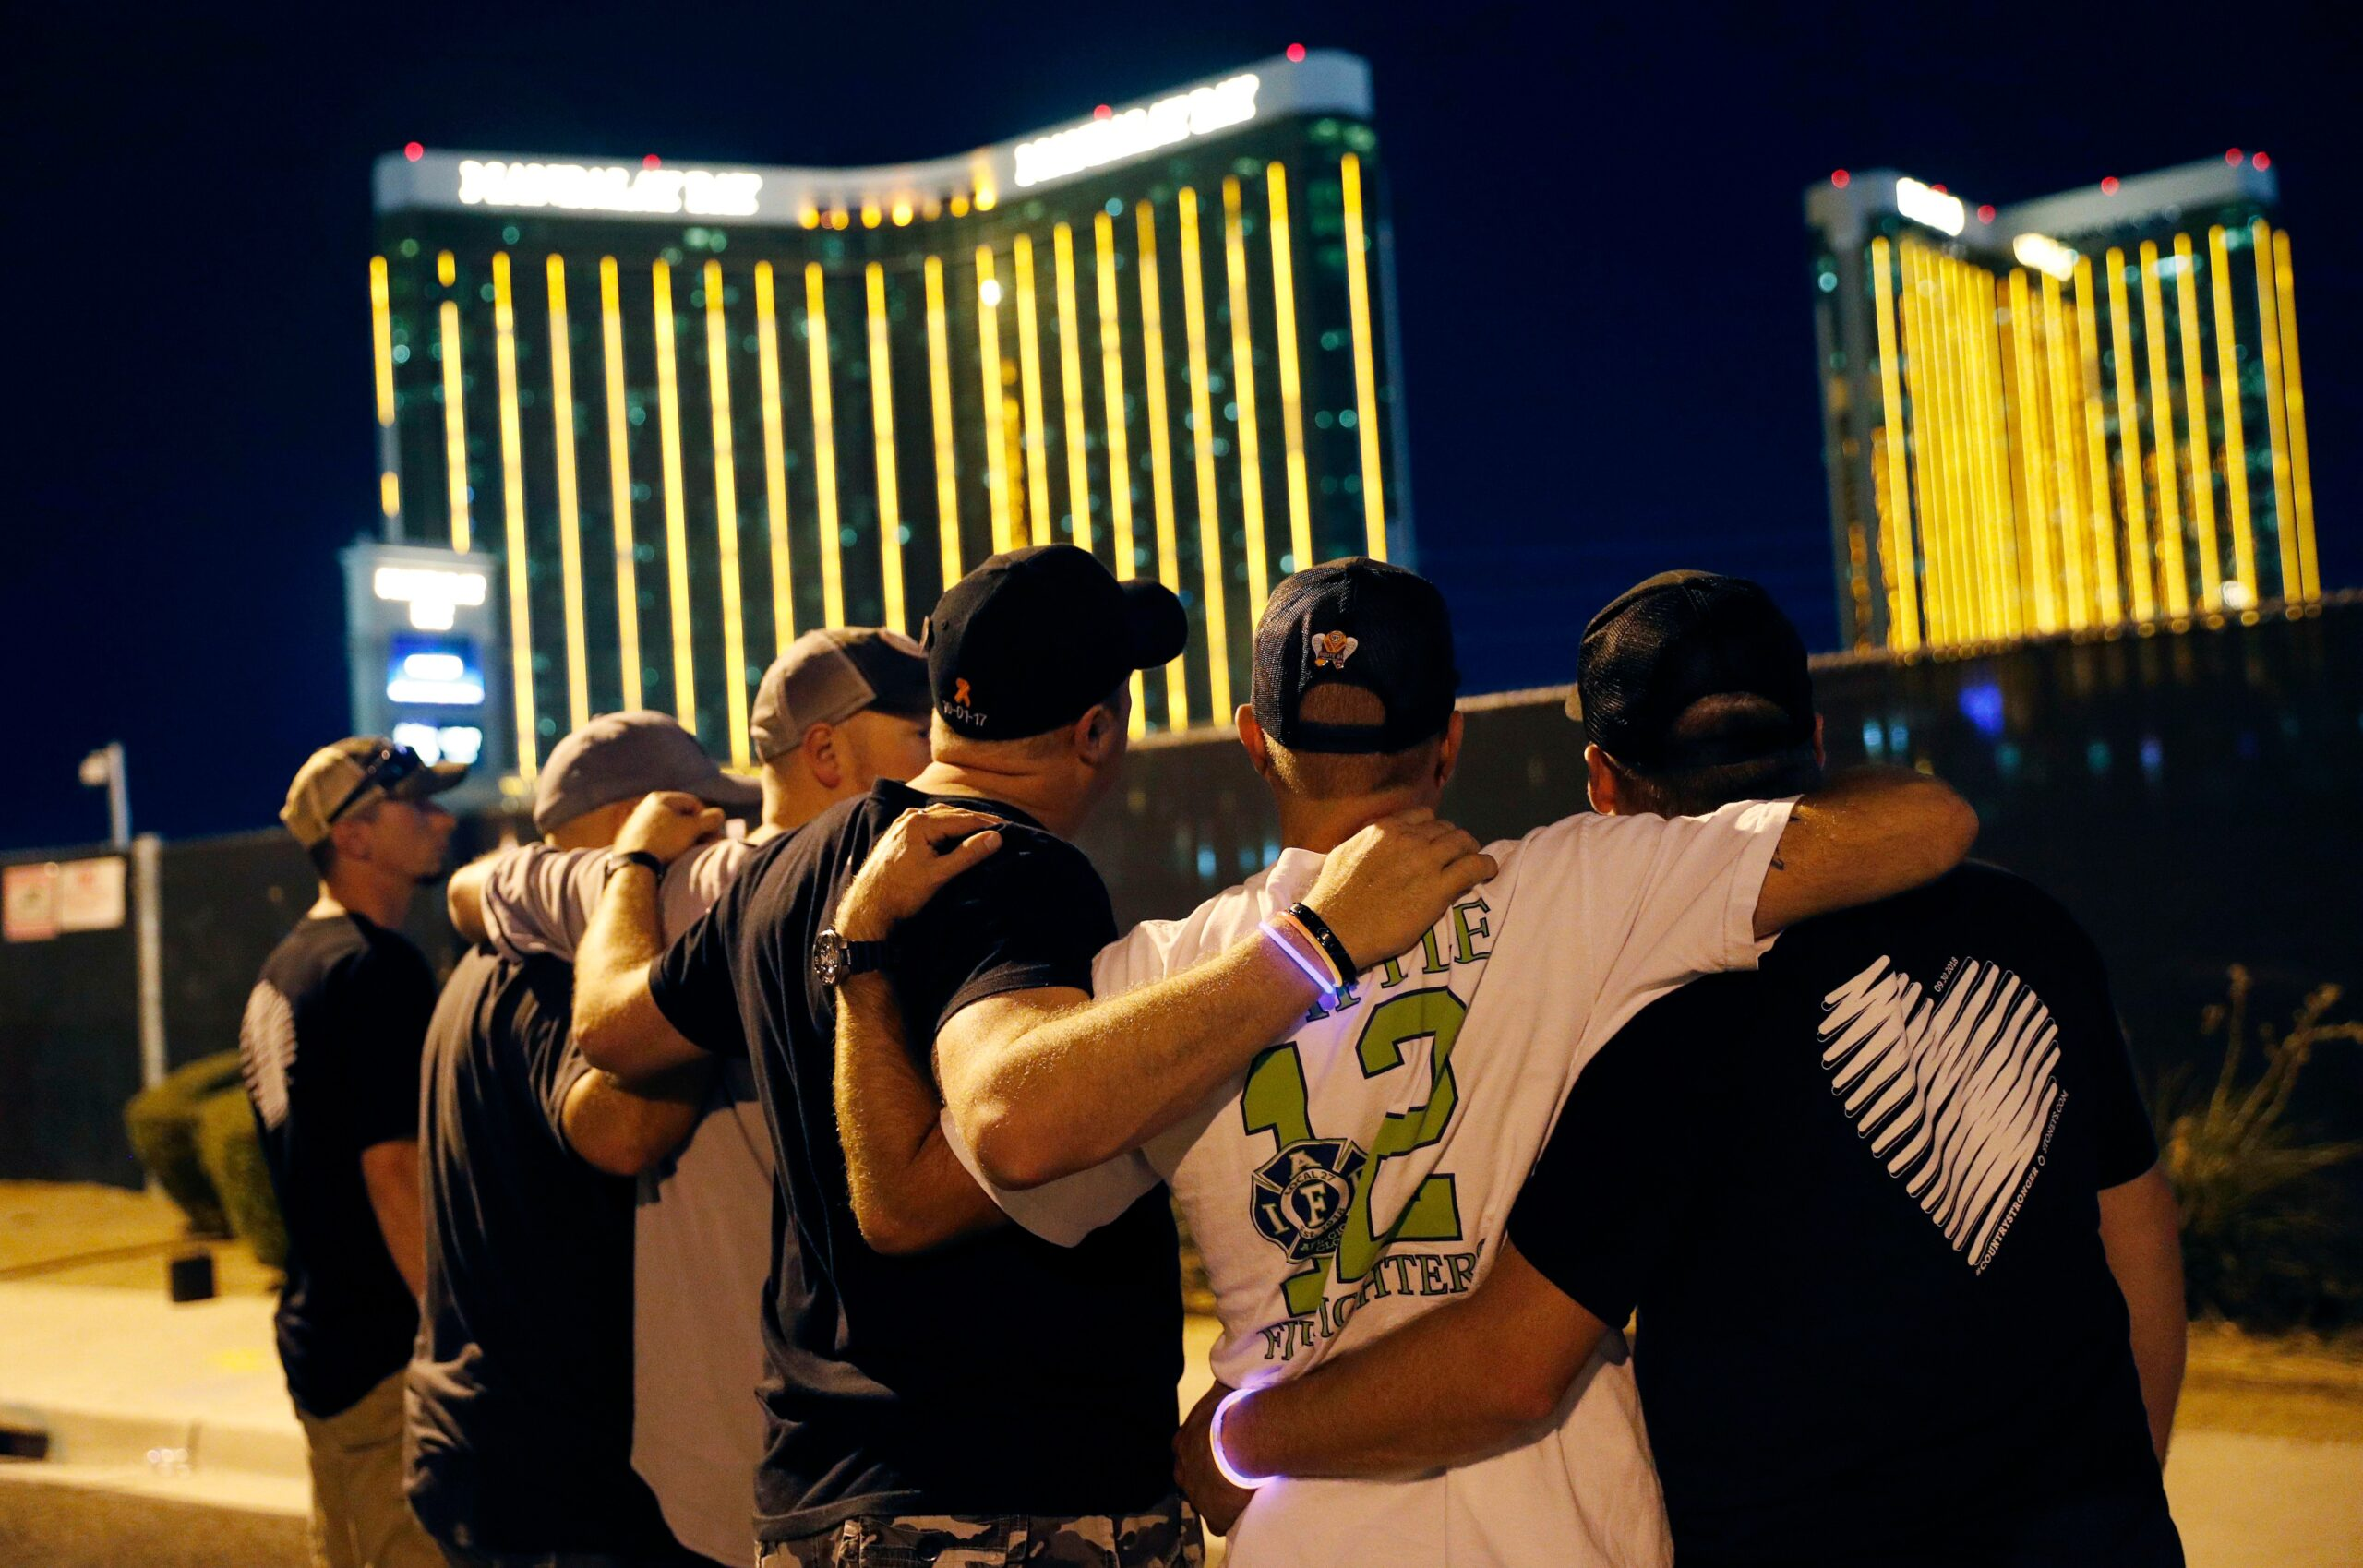 Judge approves $800M payout plan for Vegas shooting victims